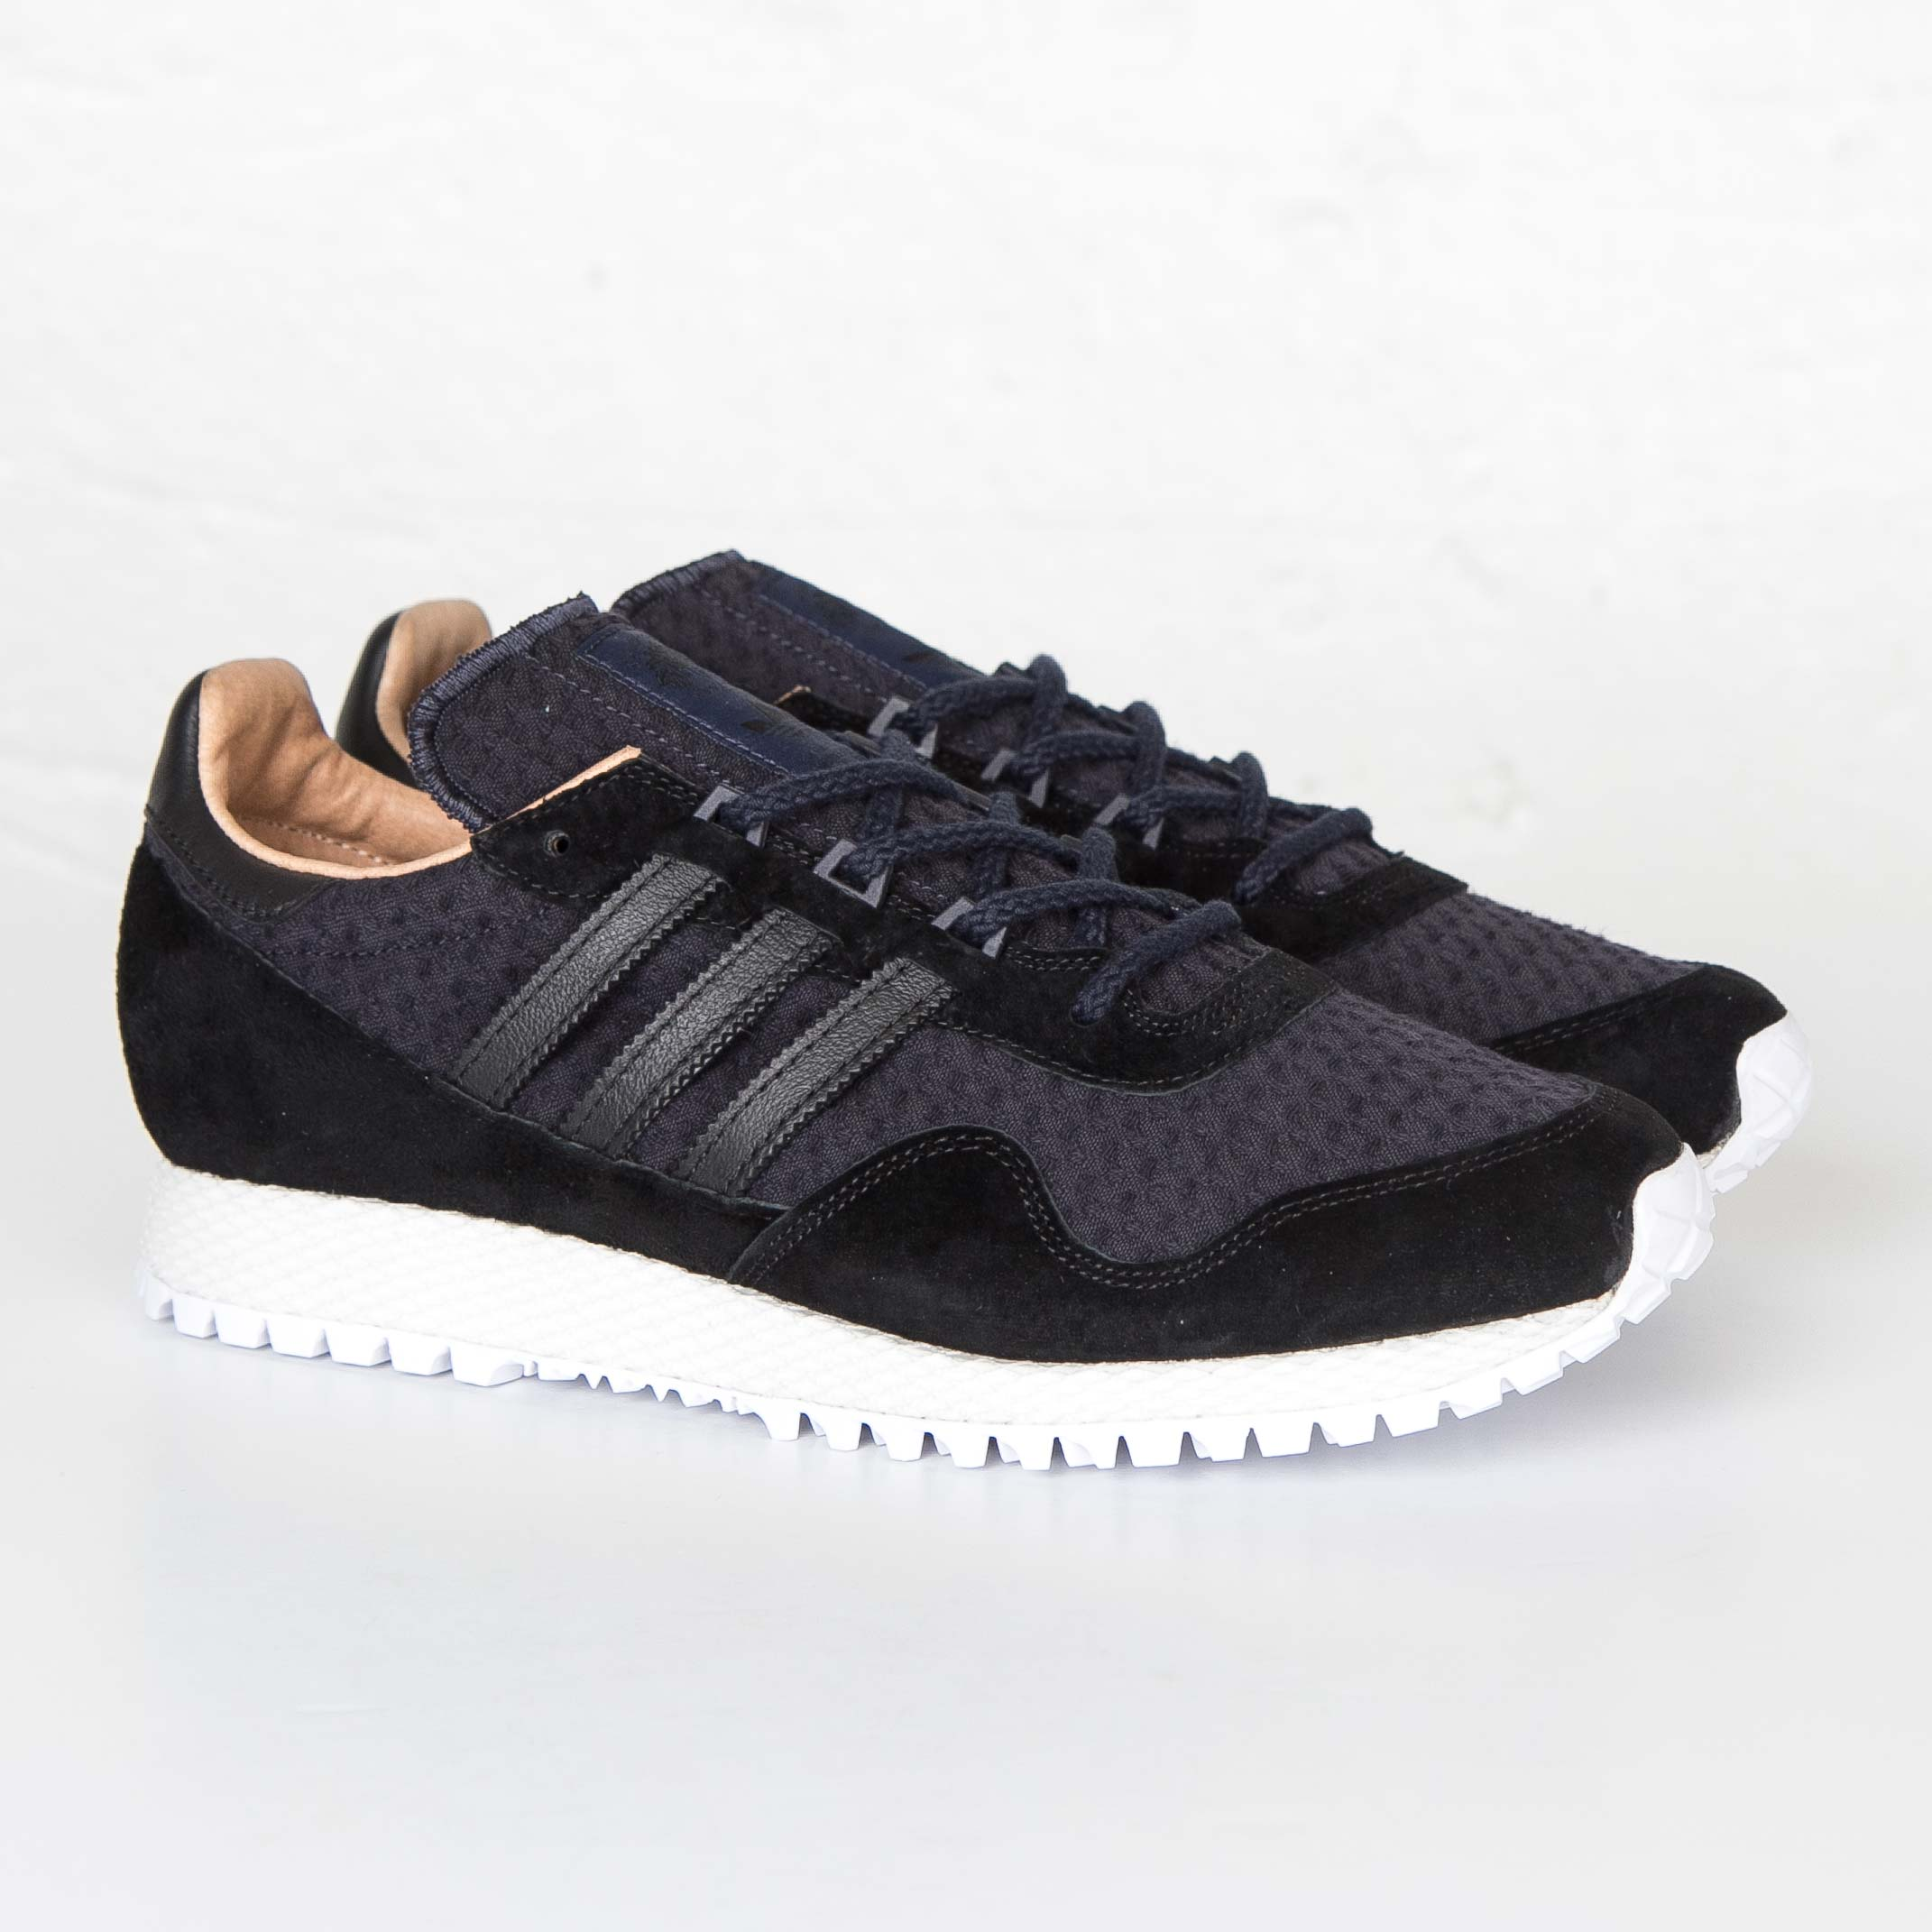 outlet store 867a7 6e057 adidas New York x AKOG - Af5805 - Sneakersnstuff   sneakers ...